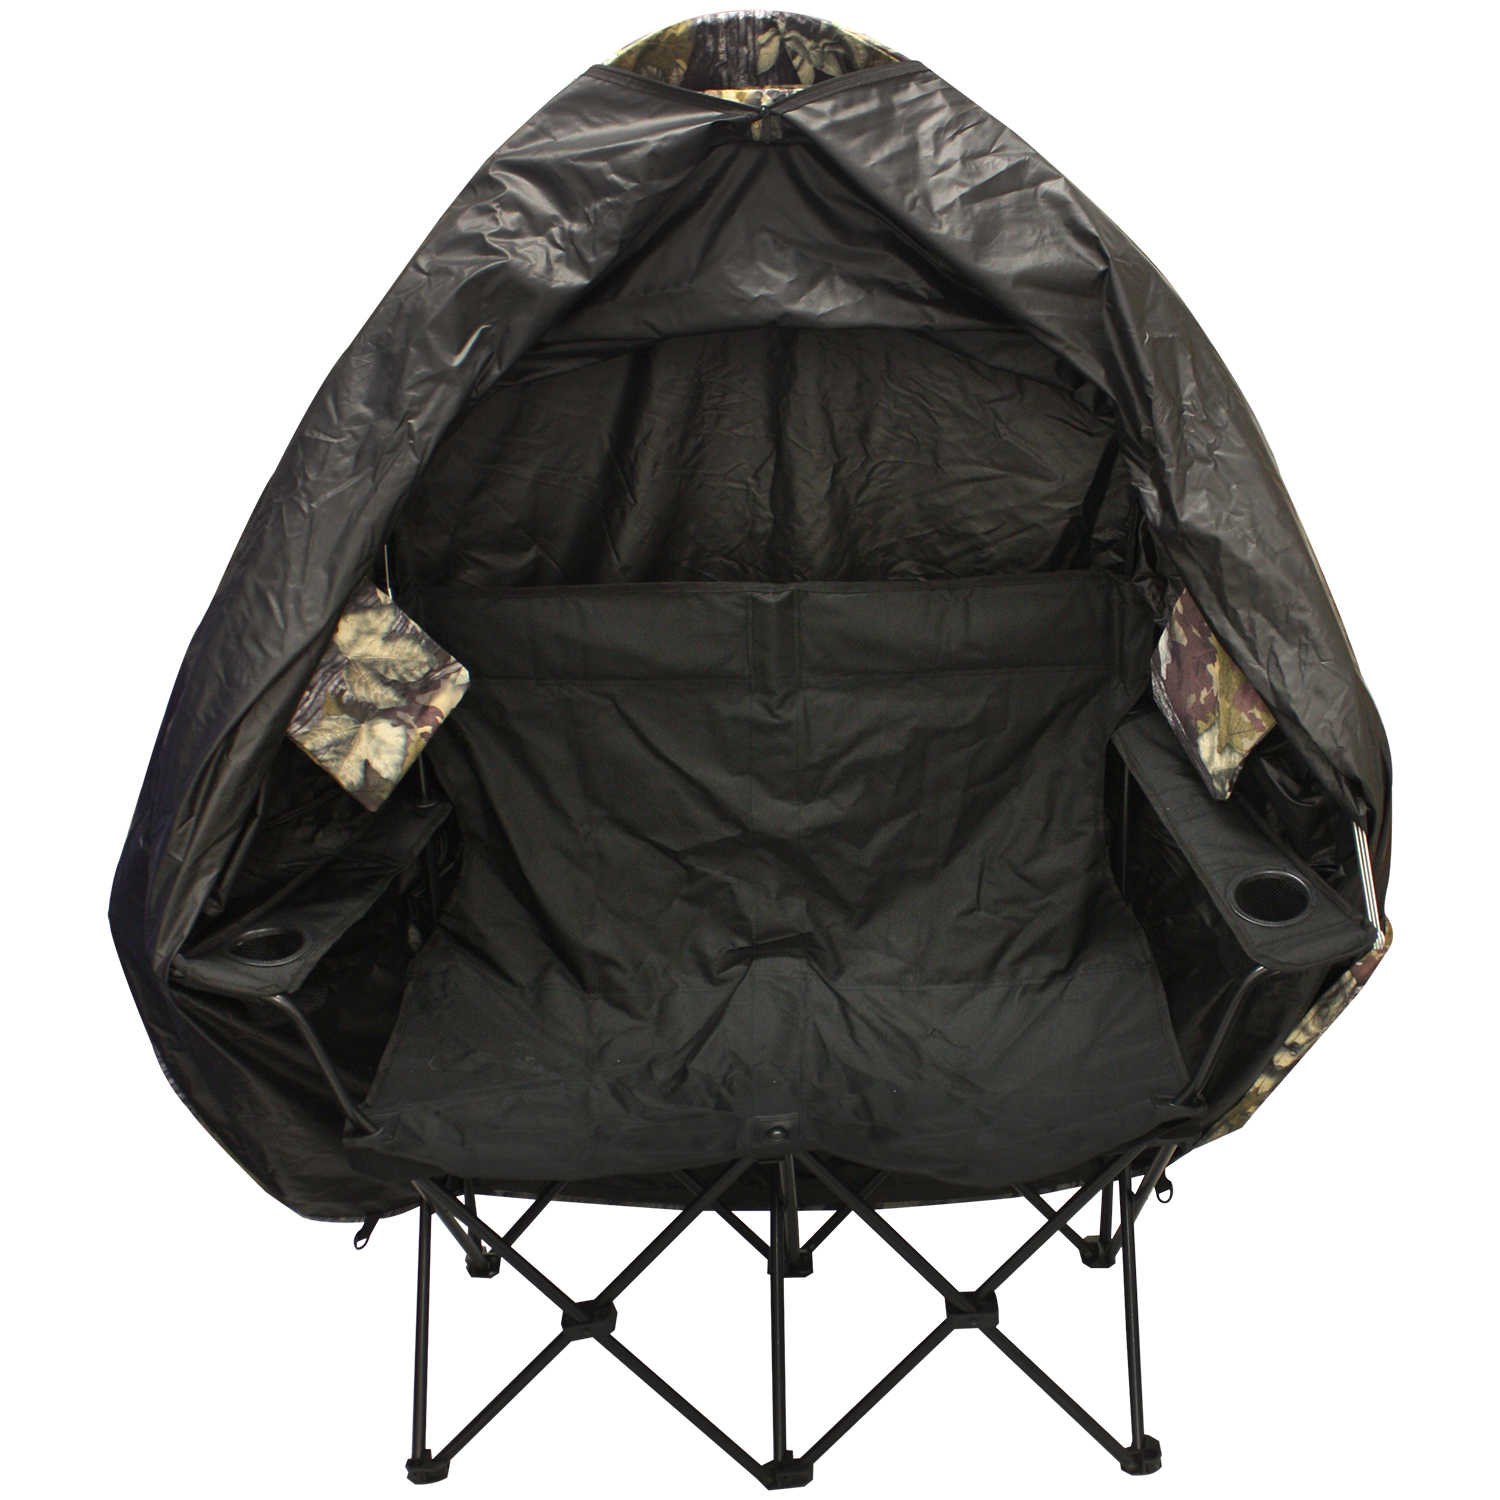 Two Person Folding Chair Nitehawk Camouflage Portable 2 Person Folding Hunting Tent